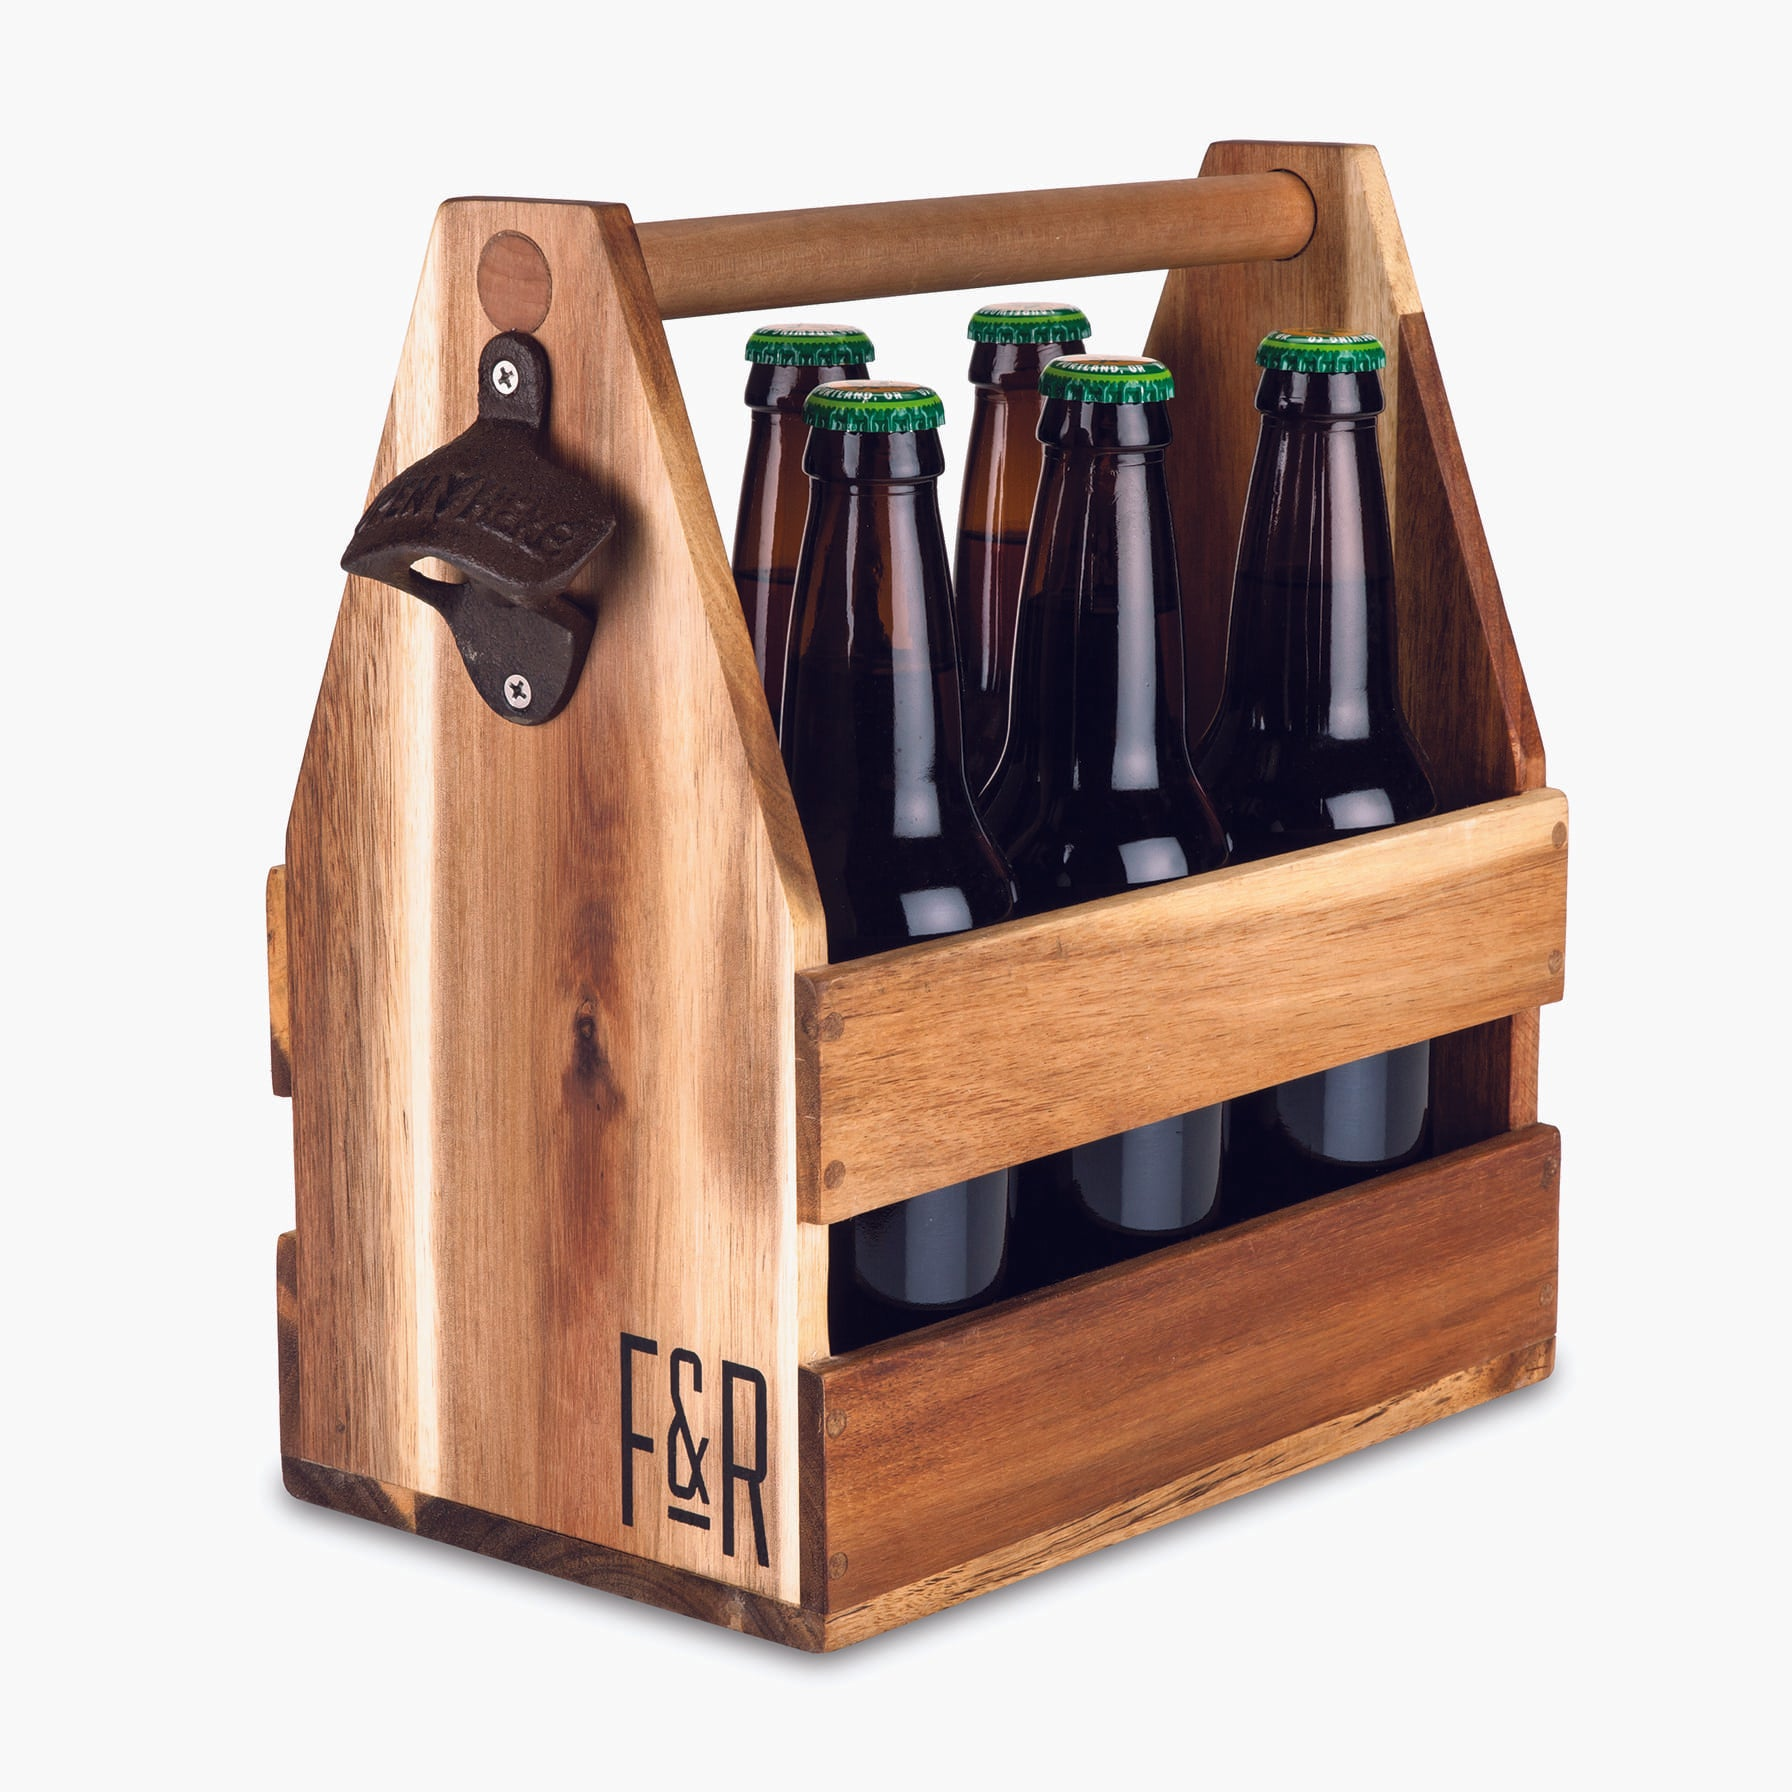 Acacia Wood Beer Caddy